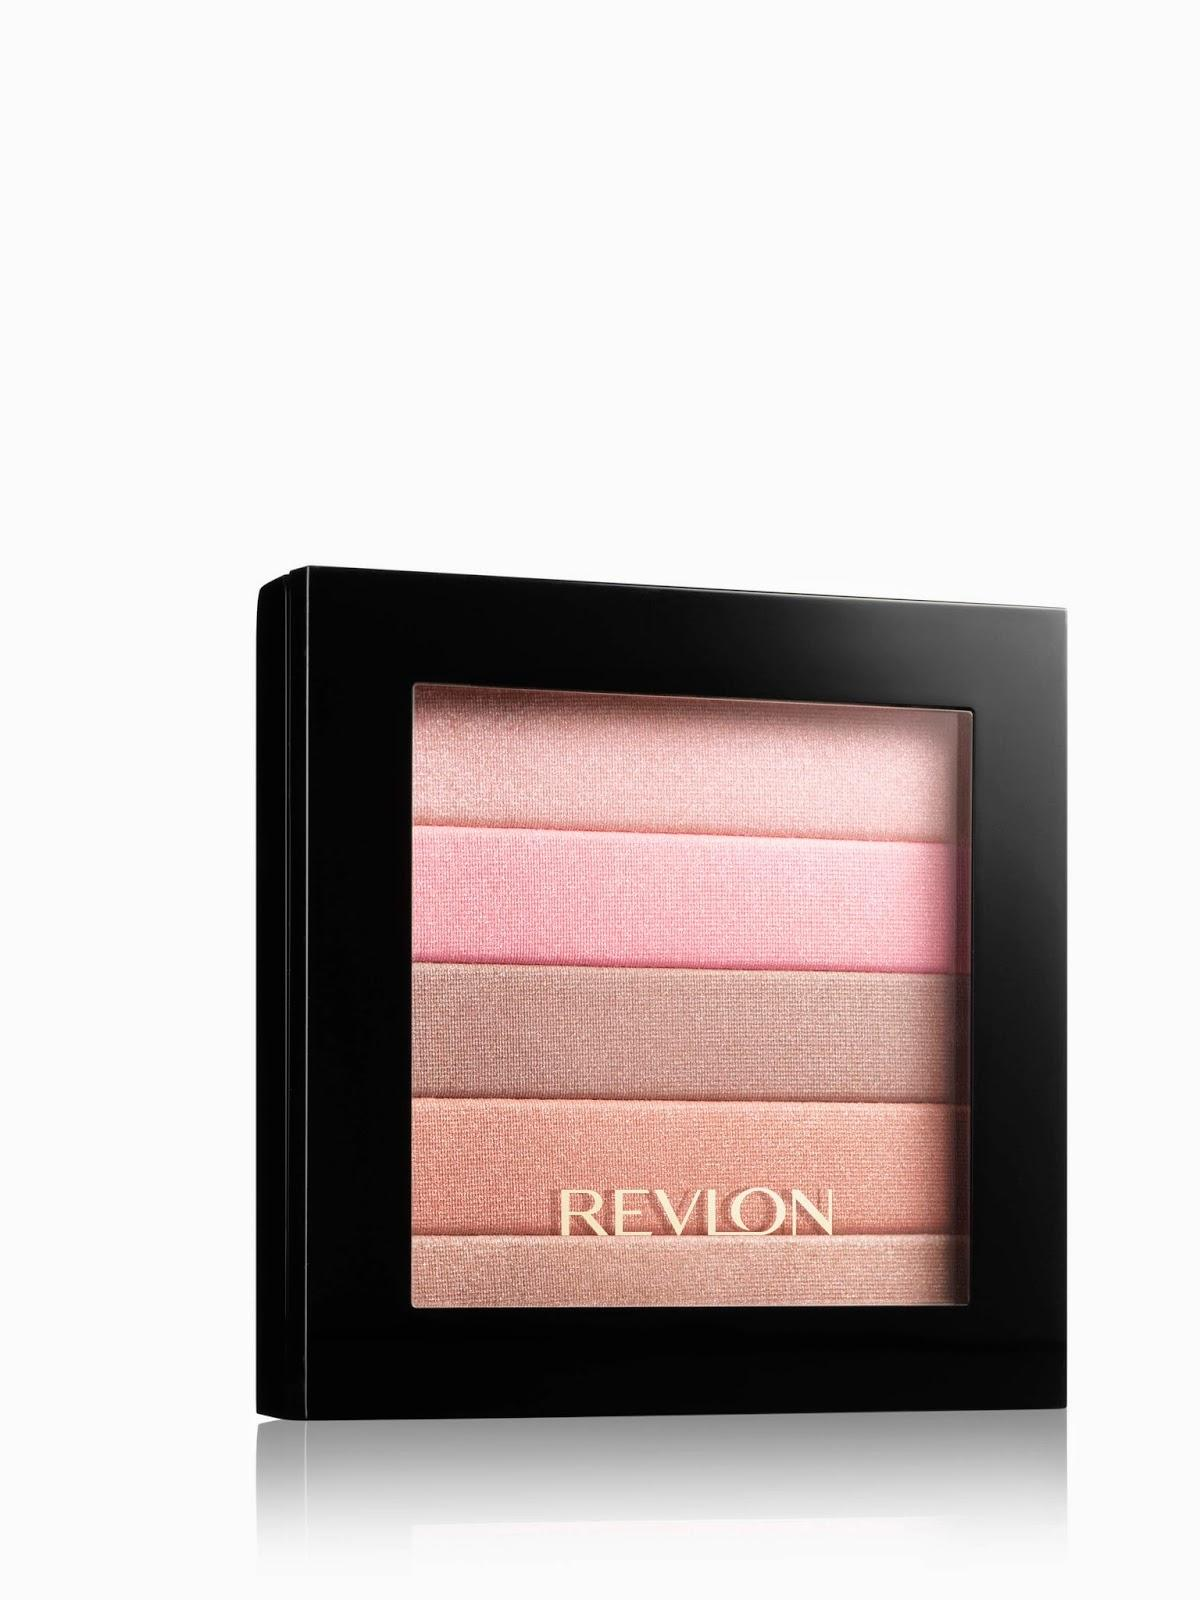 preview revlon rio rush by gucci westman coll L N98tP6